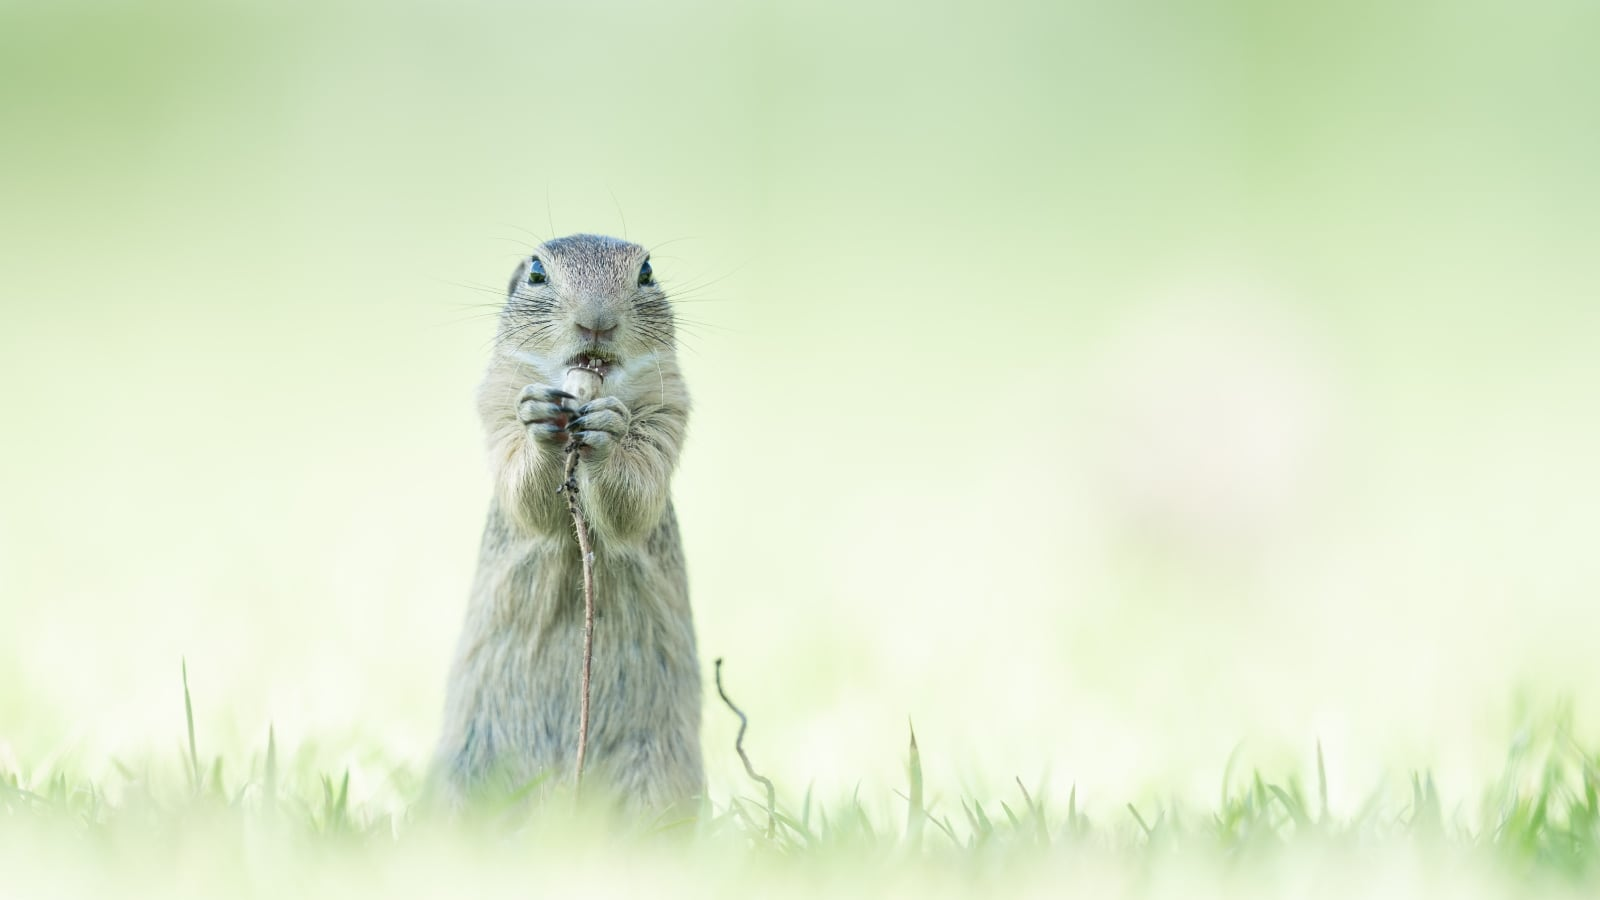 foto: © Alex Pansier, Netherlands, Shortlist, Open, Natural World & Wildlife, 2021 Sony World Photography Awards - konijn eet bloem